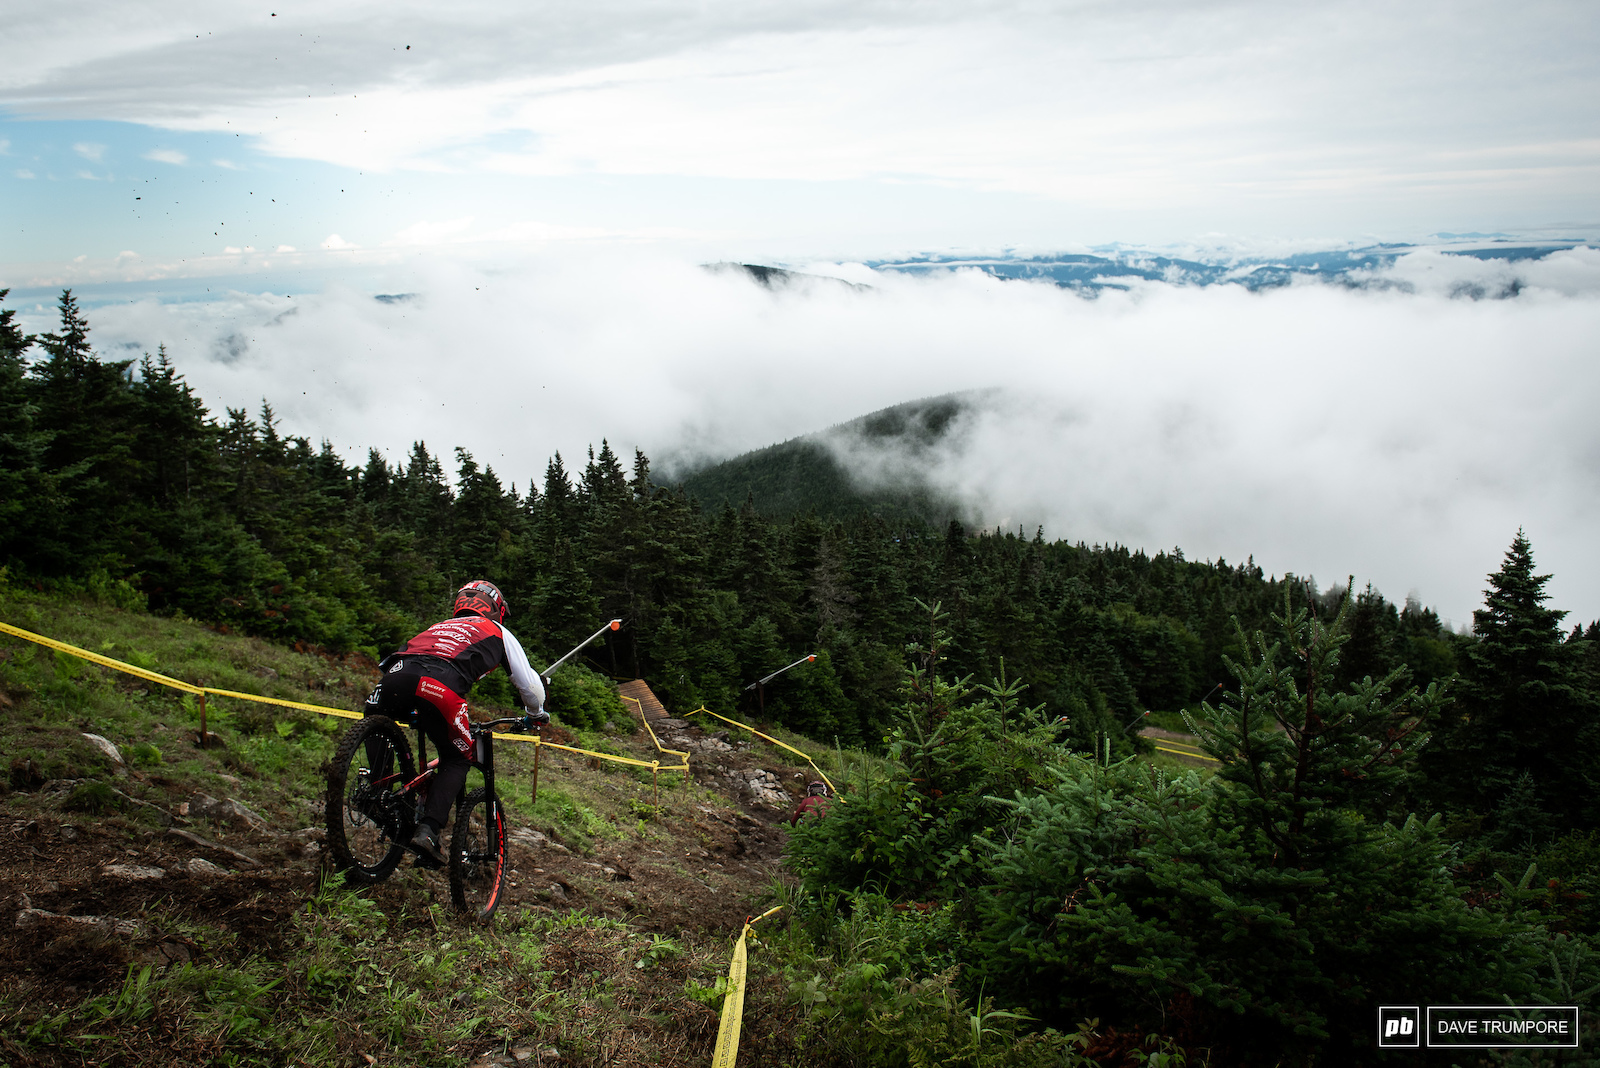 Gaetan Vige drops out of the start gate as the fog finally began to lift of the top of the mountain.